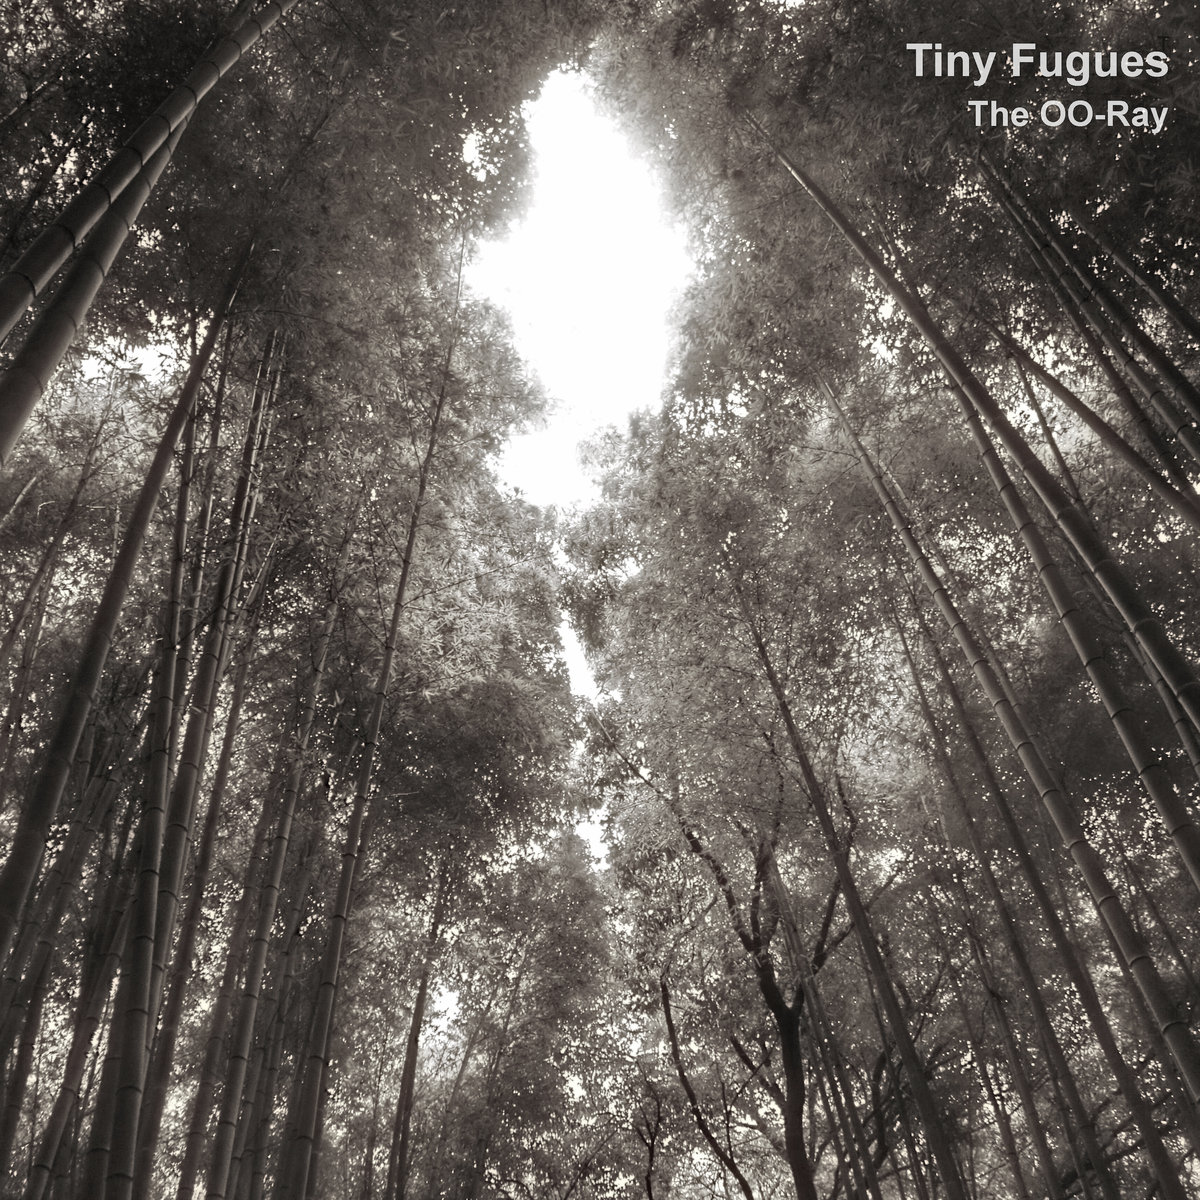 Tiny Fugues out today on Audiobulb